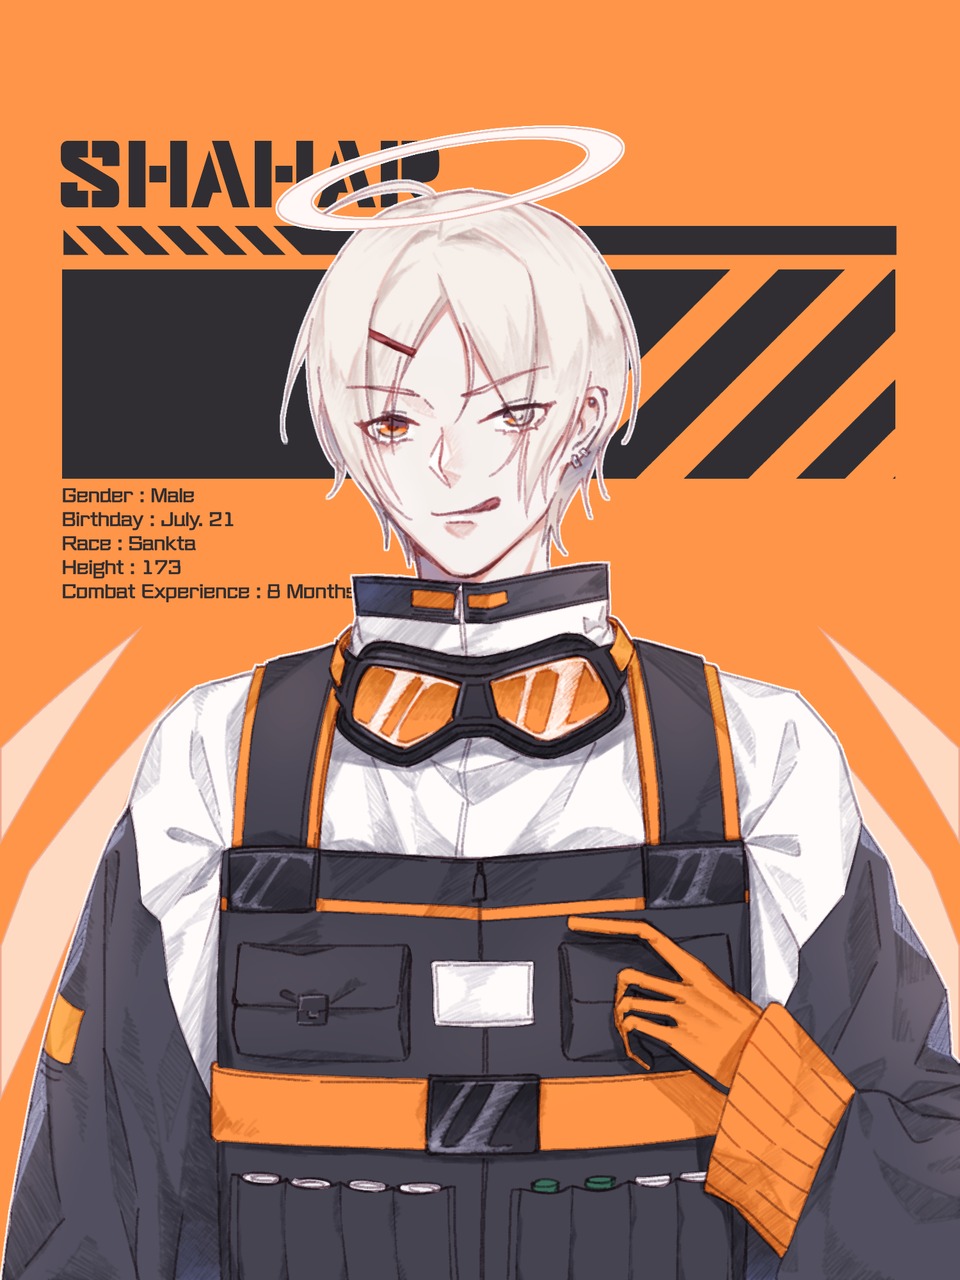 ArknightsOC : SHAHAR Illust of 十四 | TOYO medibangpaint orange original sankta boy techwear